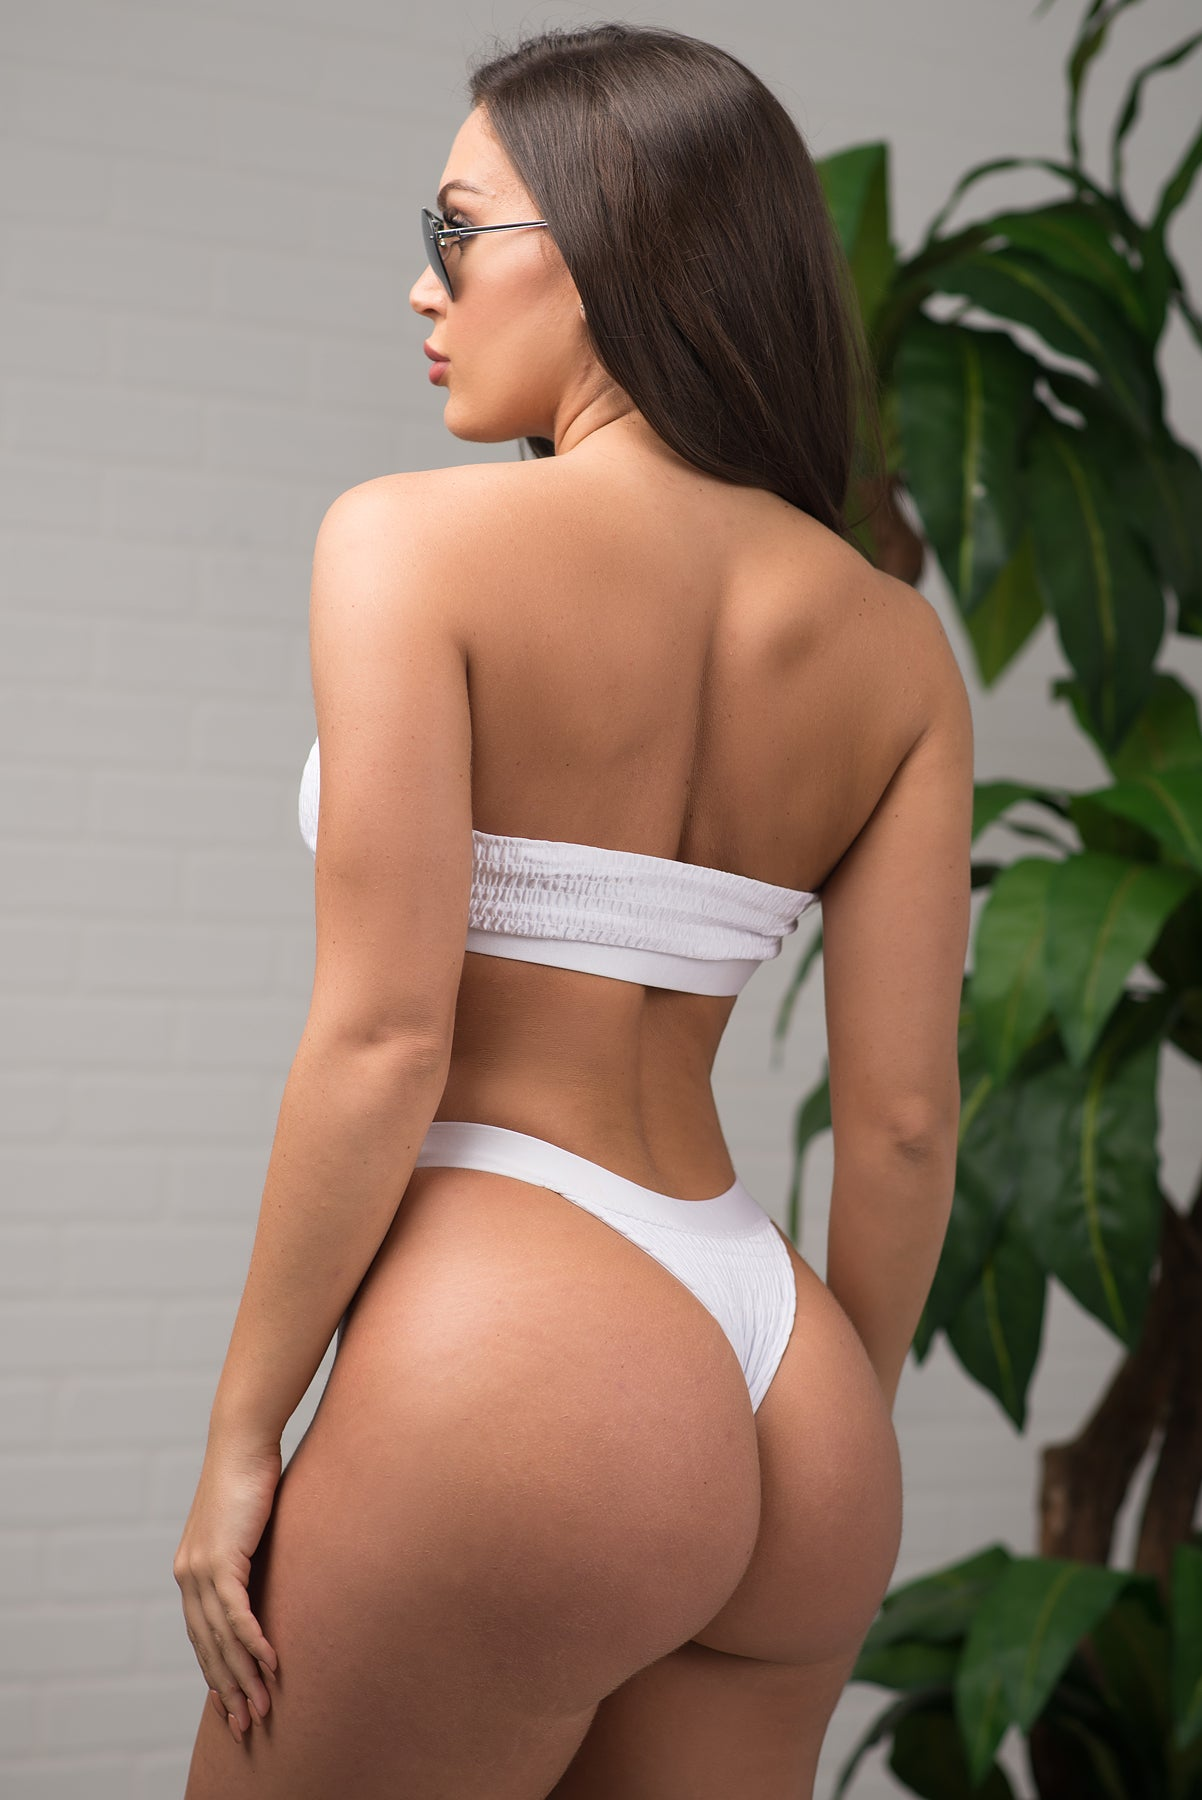 Breakwater Beach Swimsuit - White